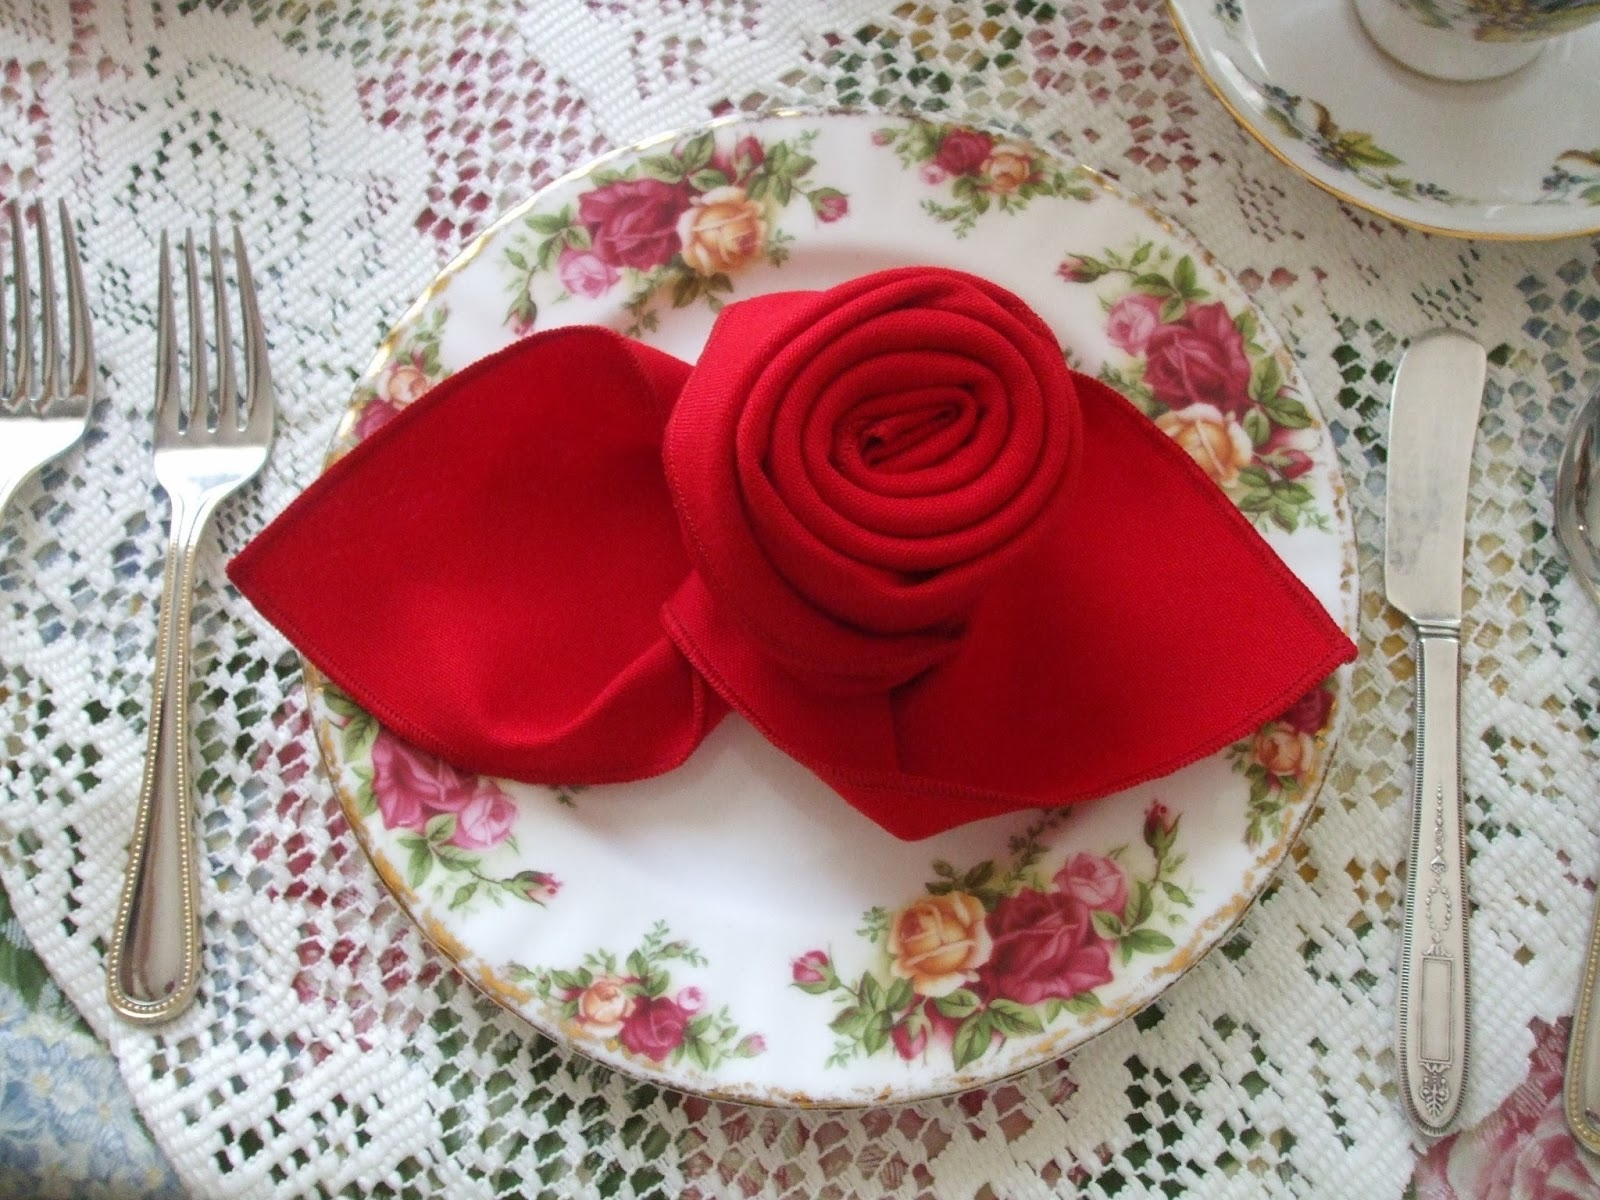 rosemary 39 s sampler napkin folding a rose. Black Bedroom Furniture Sets. Home Design Ideas